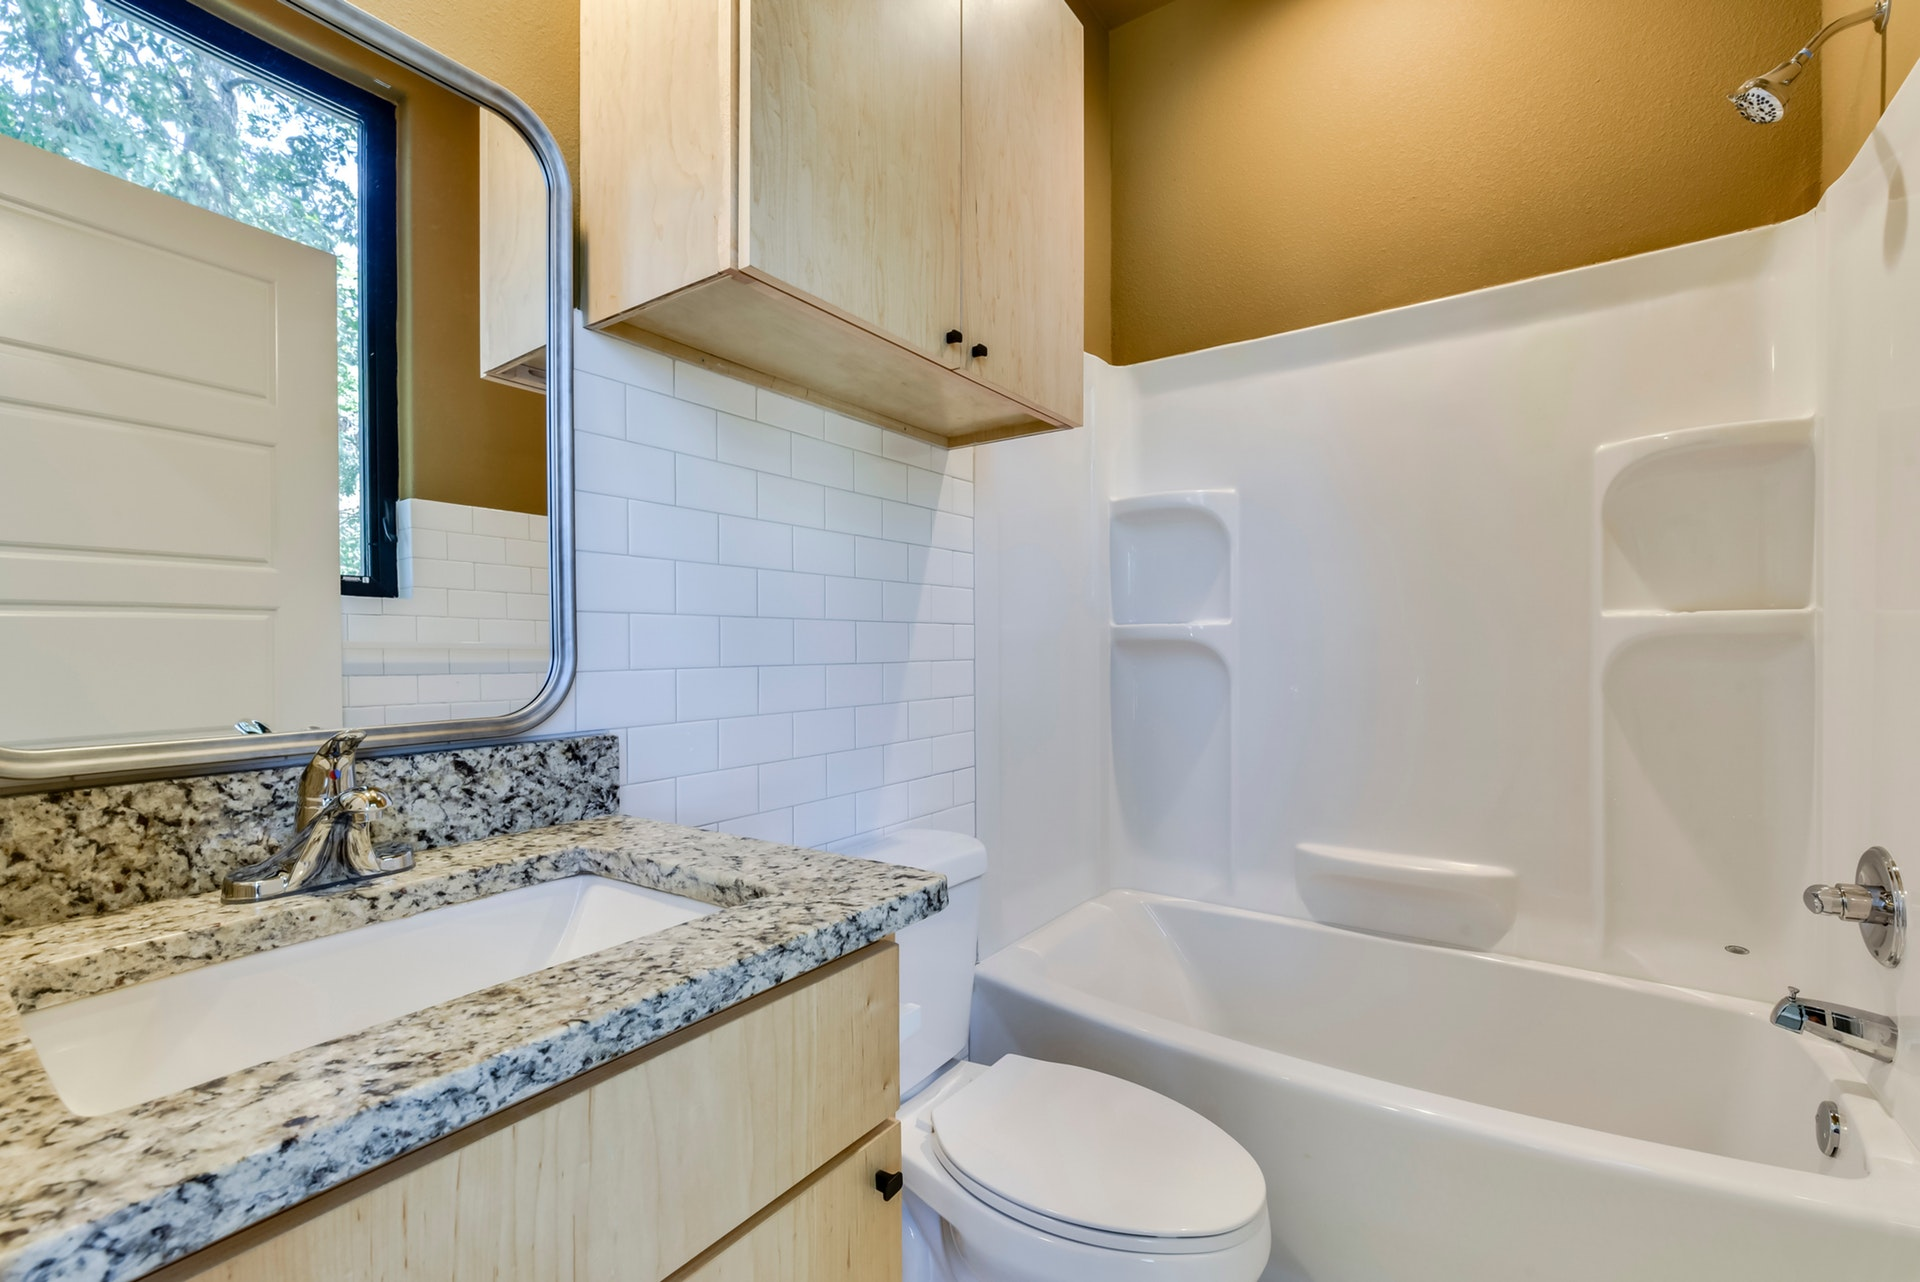 2900 Gonzales Street - Bathroom 3